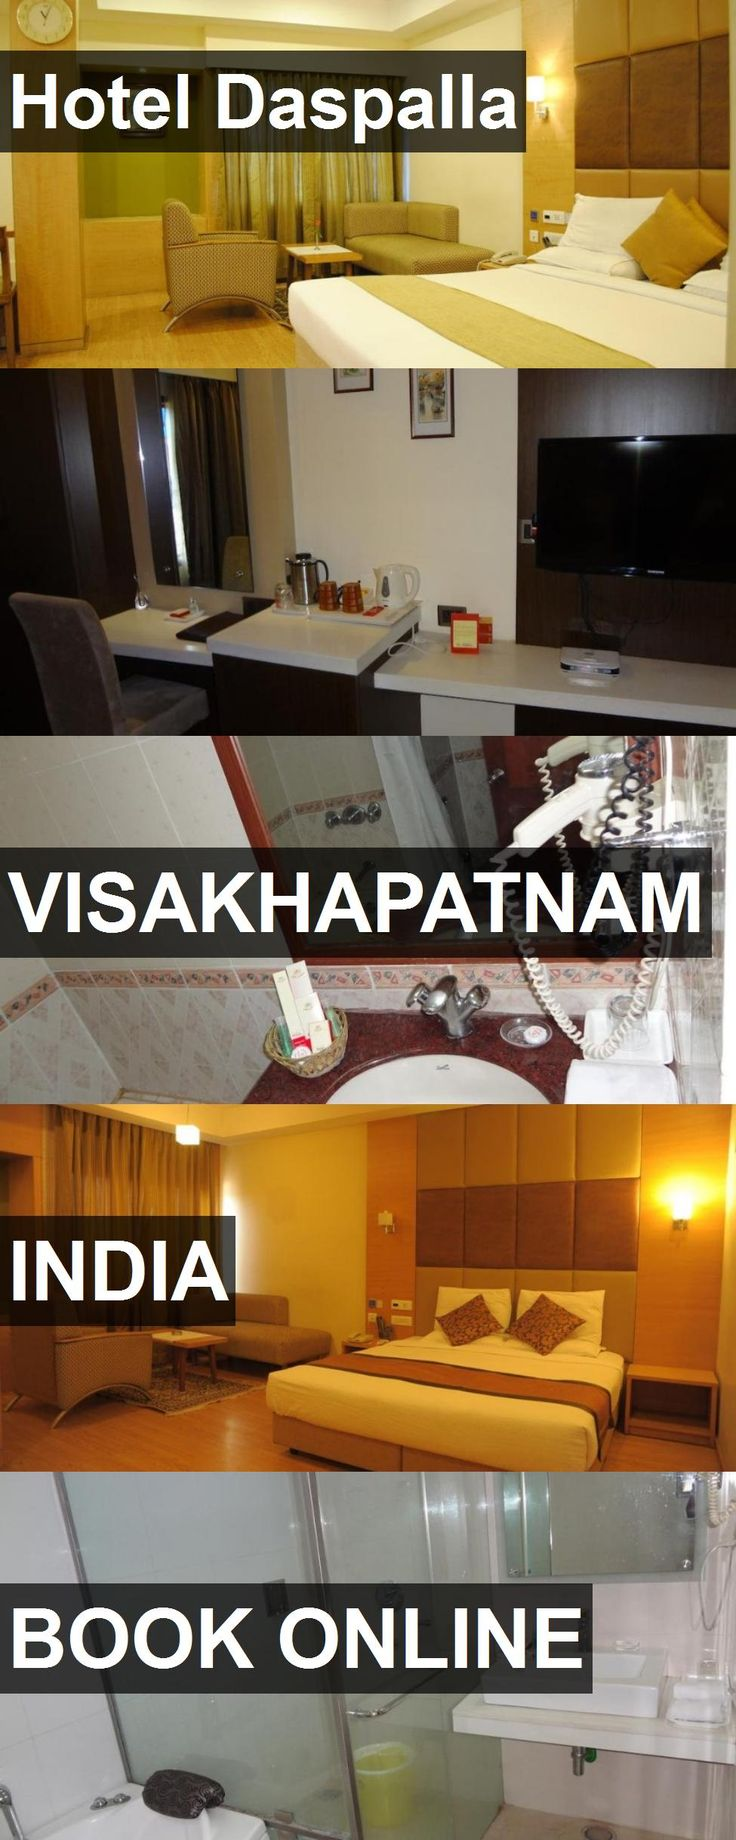 Hotel Hotel Daspalla in Visakhapatnam, India. For more information, photos, reviews and best prices please follow the link. #India #Visakhapatnam #HotelDaspalla #hotel #travel #vacation